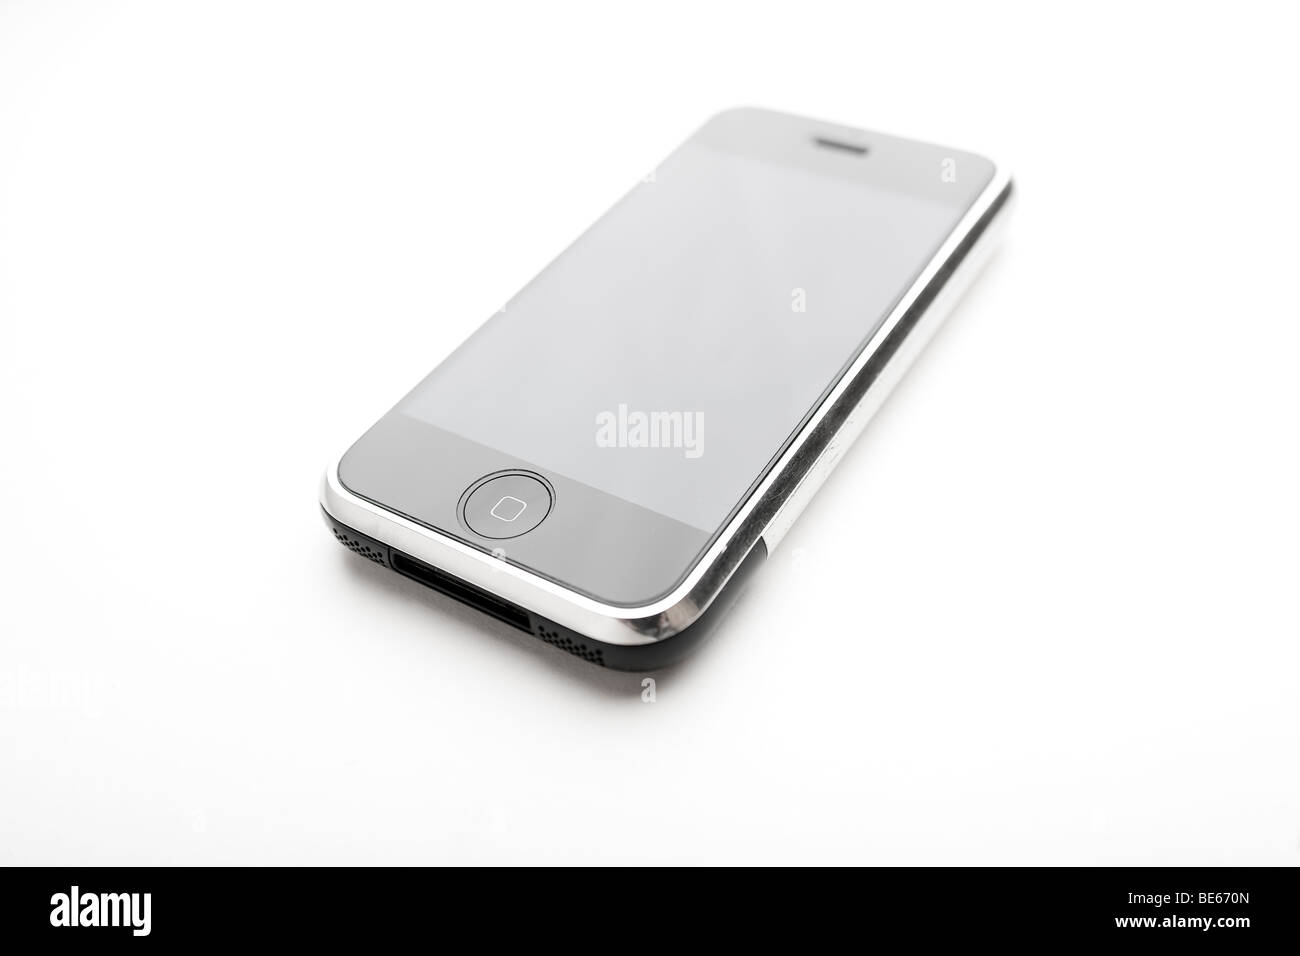 iPhone against white background - Stock Image